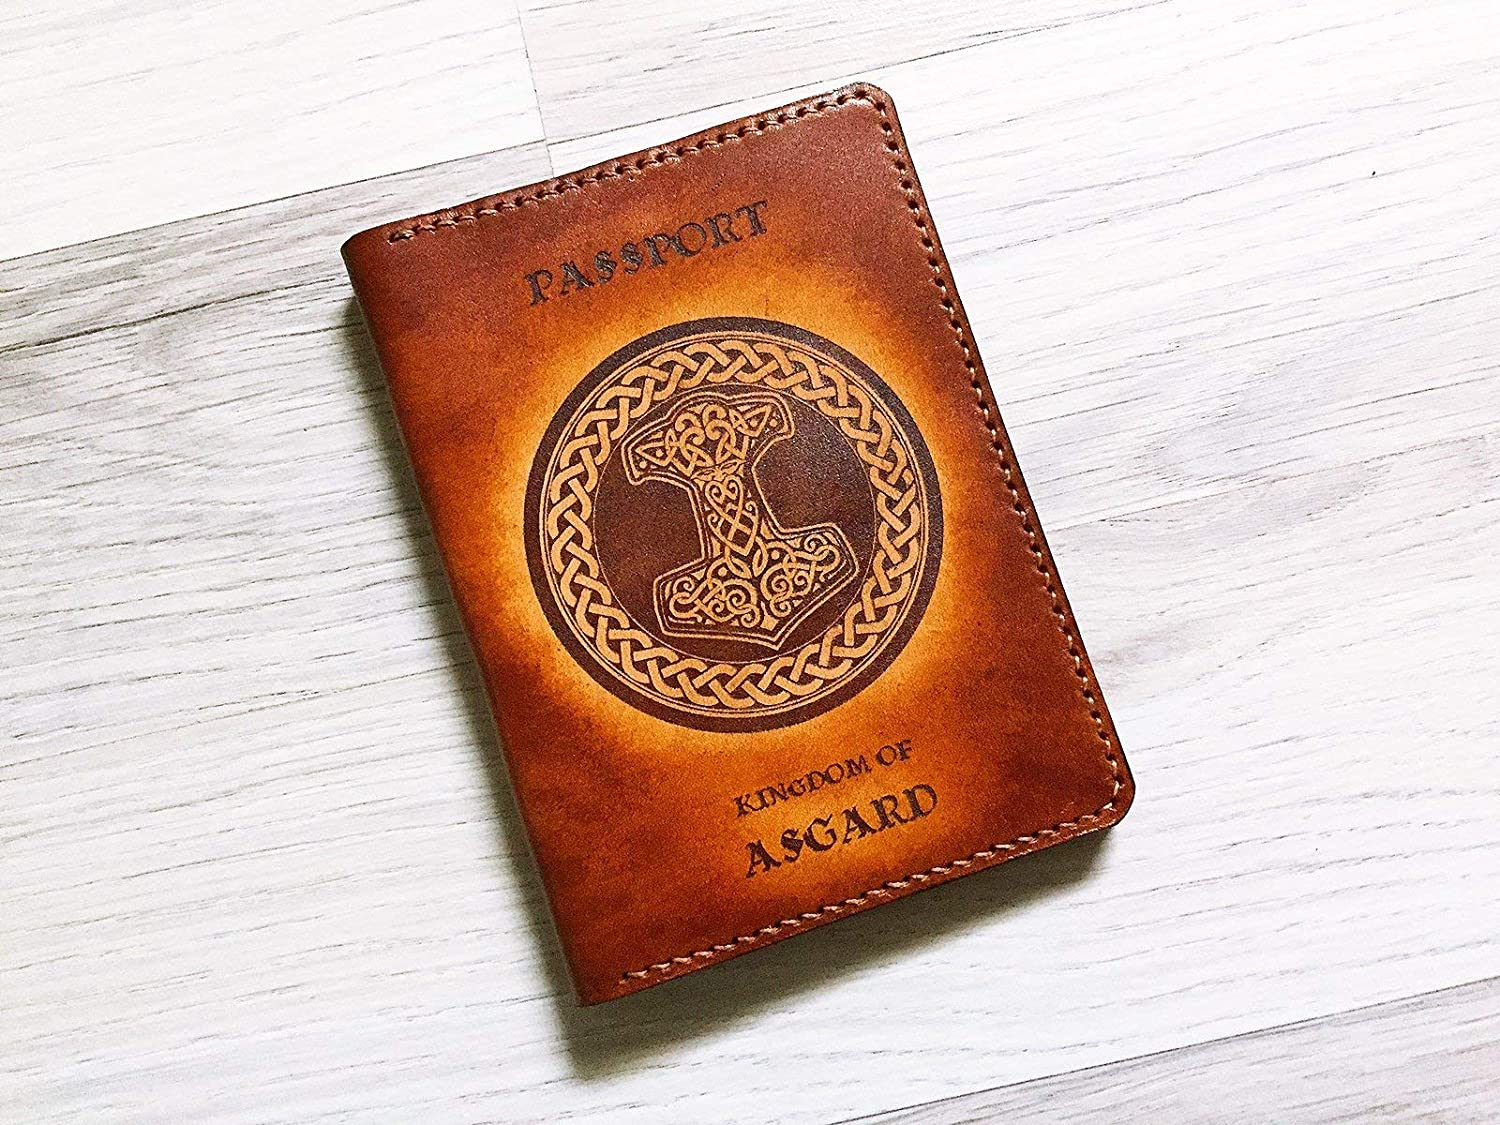 Asgardian Asgard Citizen Personalized leather handmade passport cover holder wallet custom travel gifts accessories